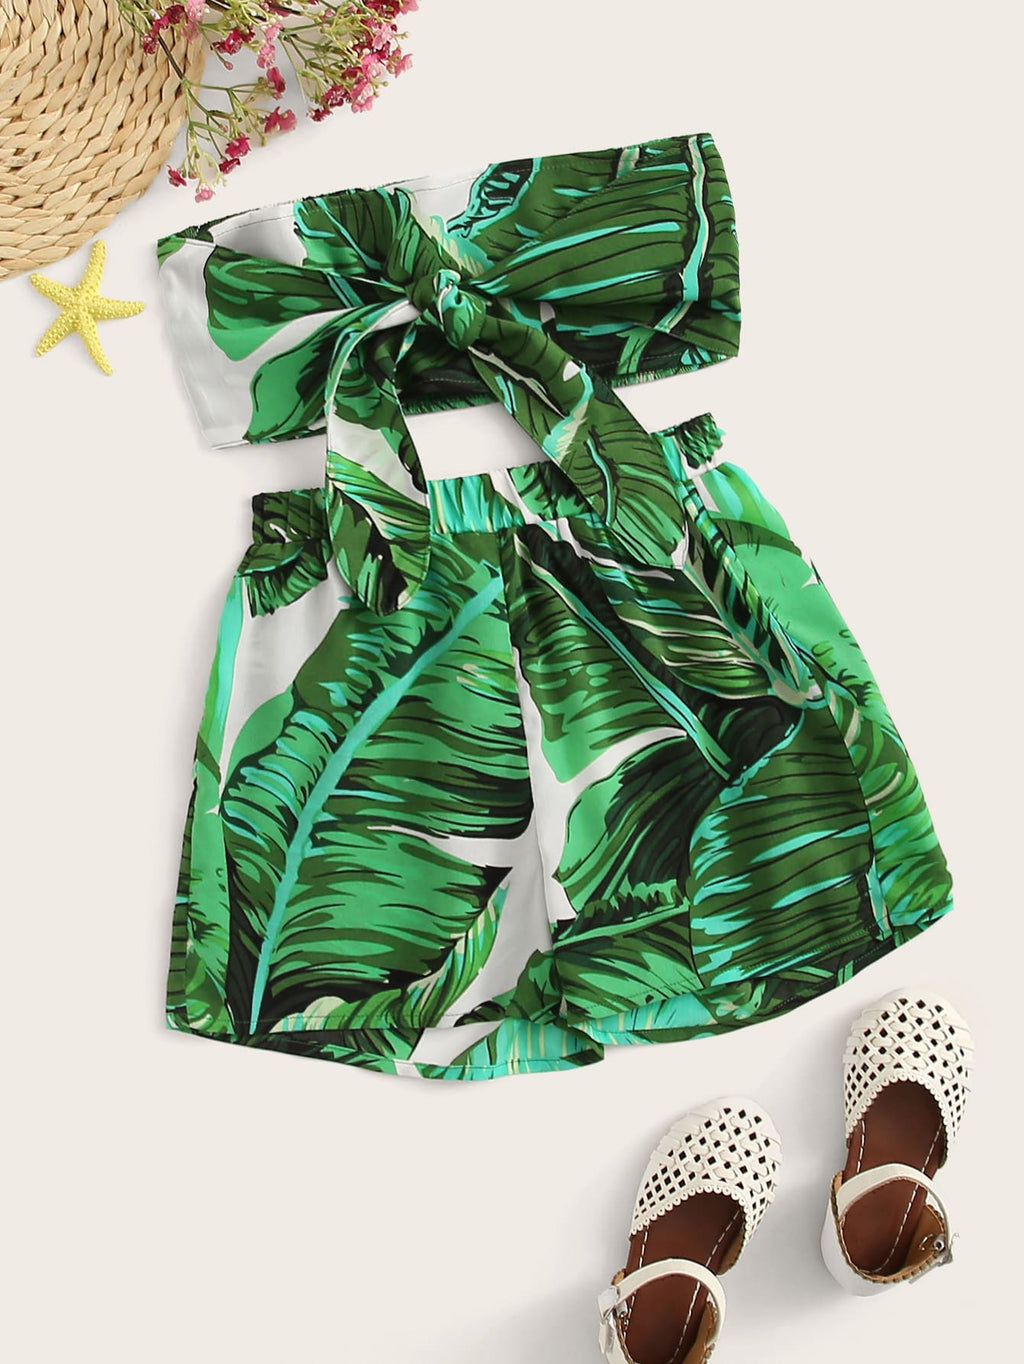 Amazon Light - Girls Tropical Print Tie Front Bandeau and Shorts Set